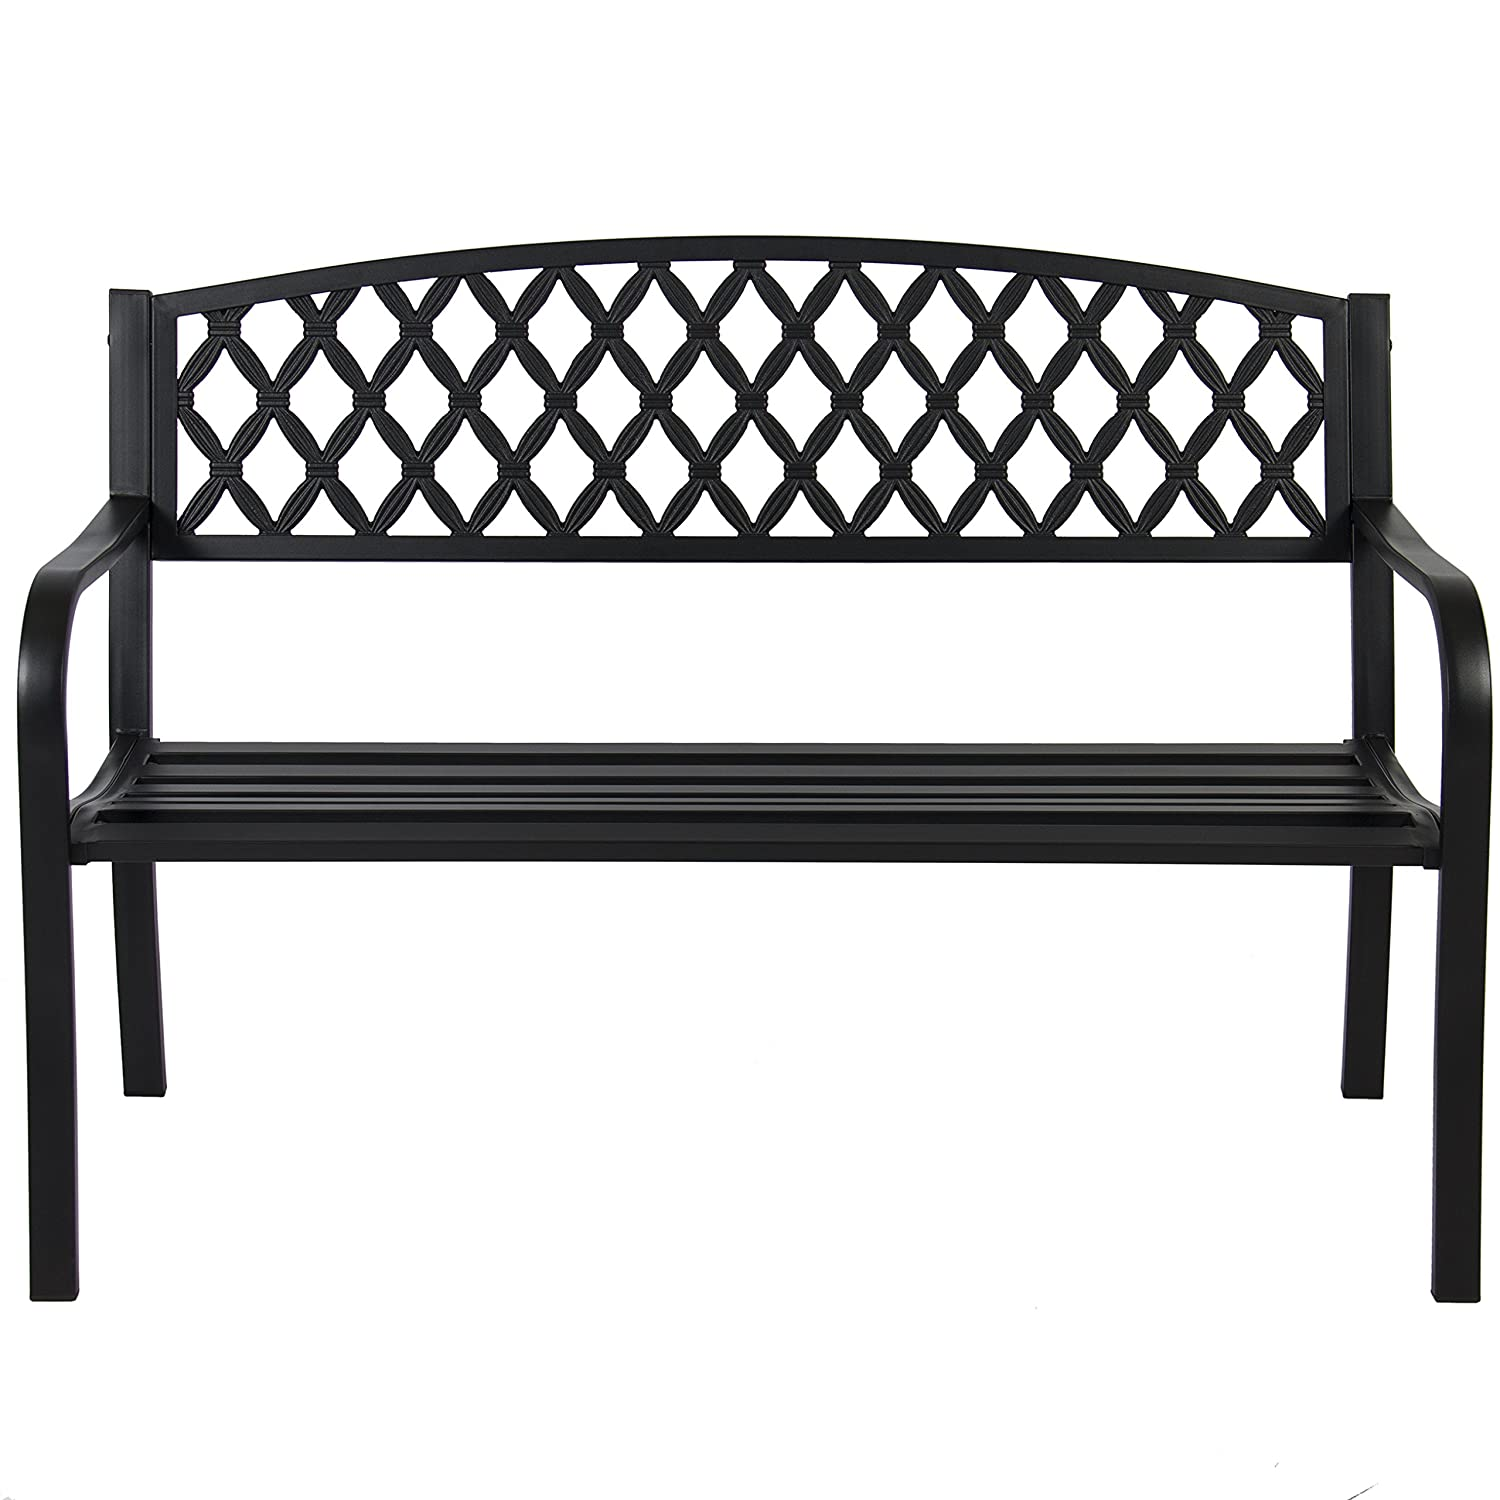 Amazoncom Best Choice Products 50 Patio Garden Bench Park Yard